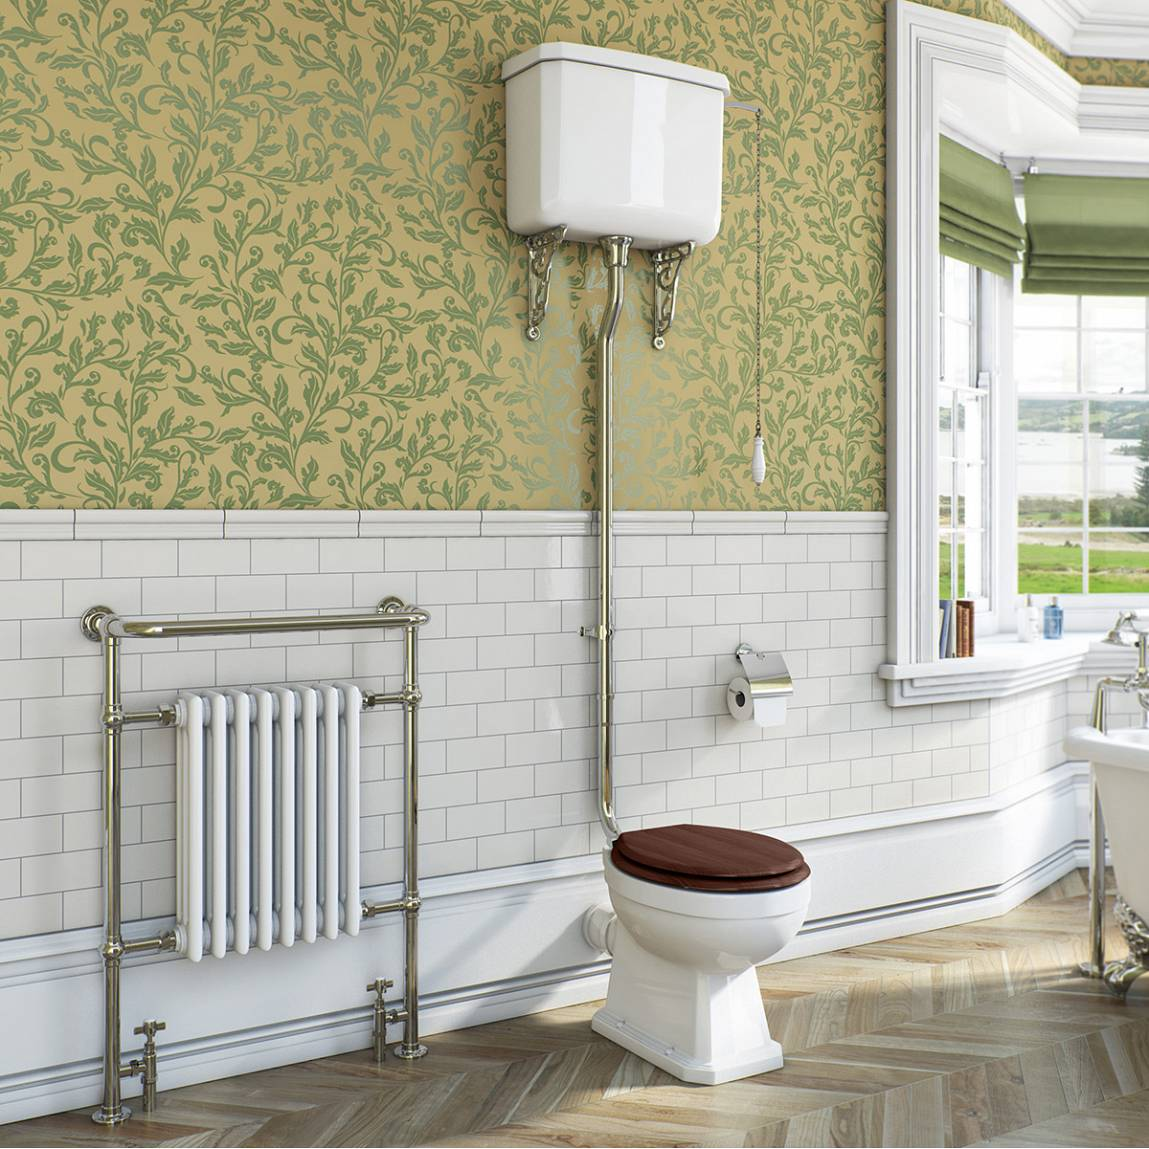 Regency high level toilet including luxury soft close walnut effect seat